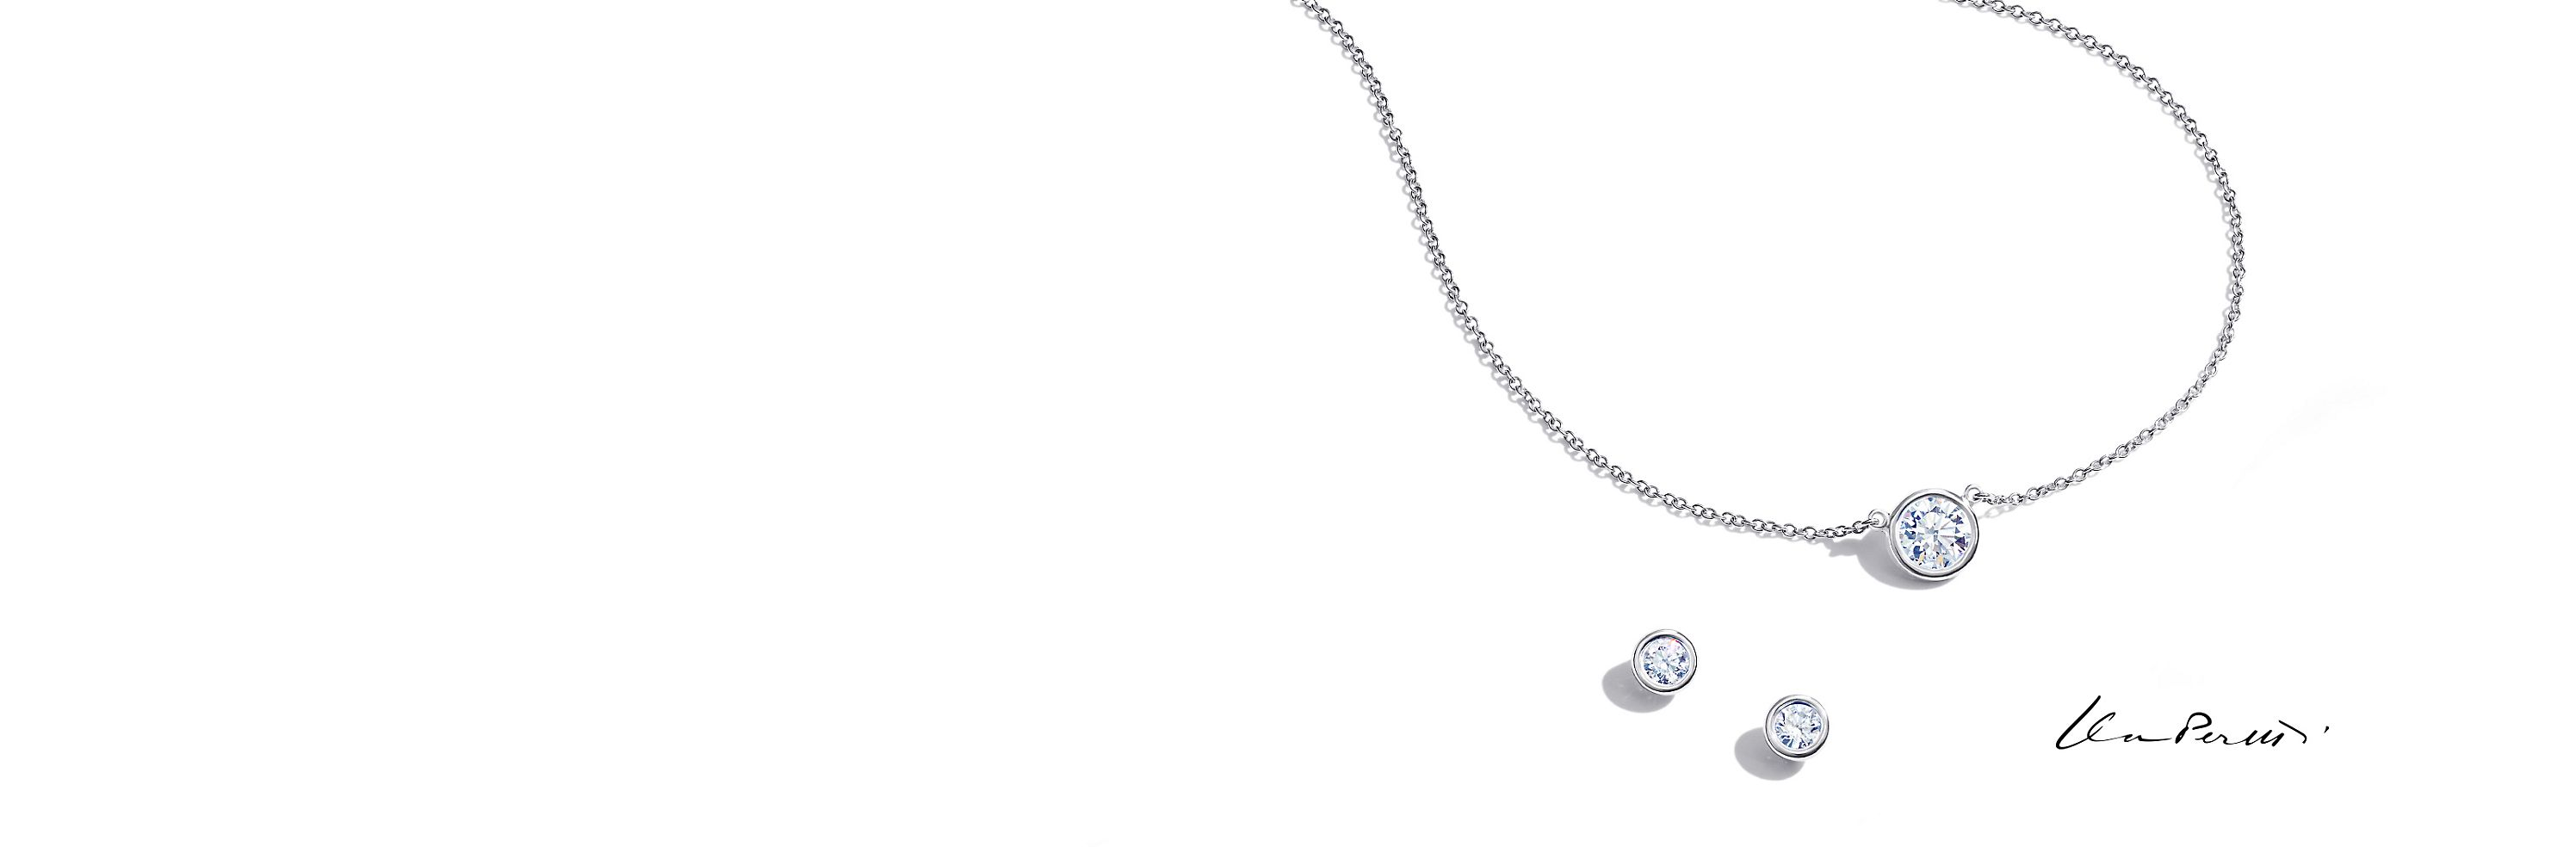 Browse Tiffany & Co. Diamond Jewelry